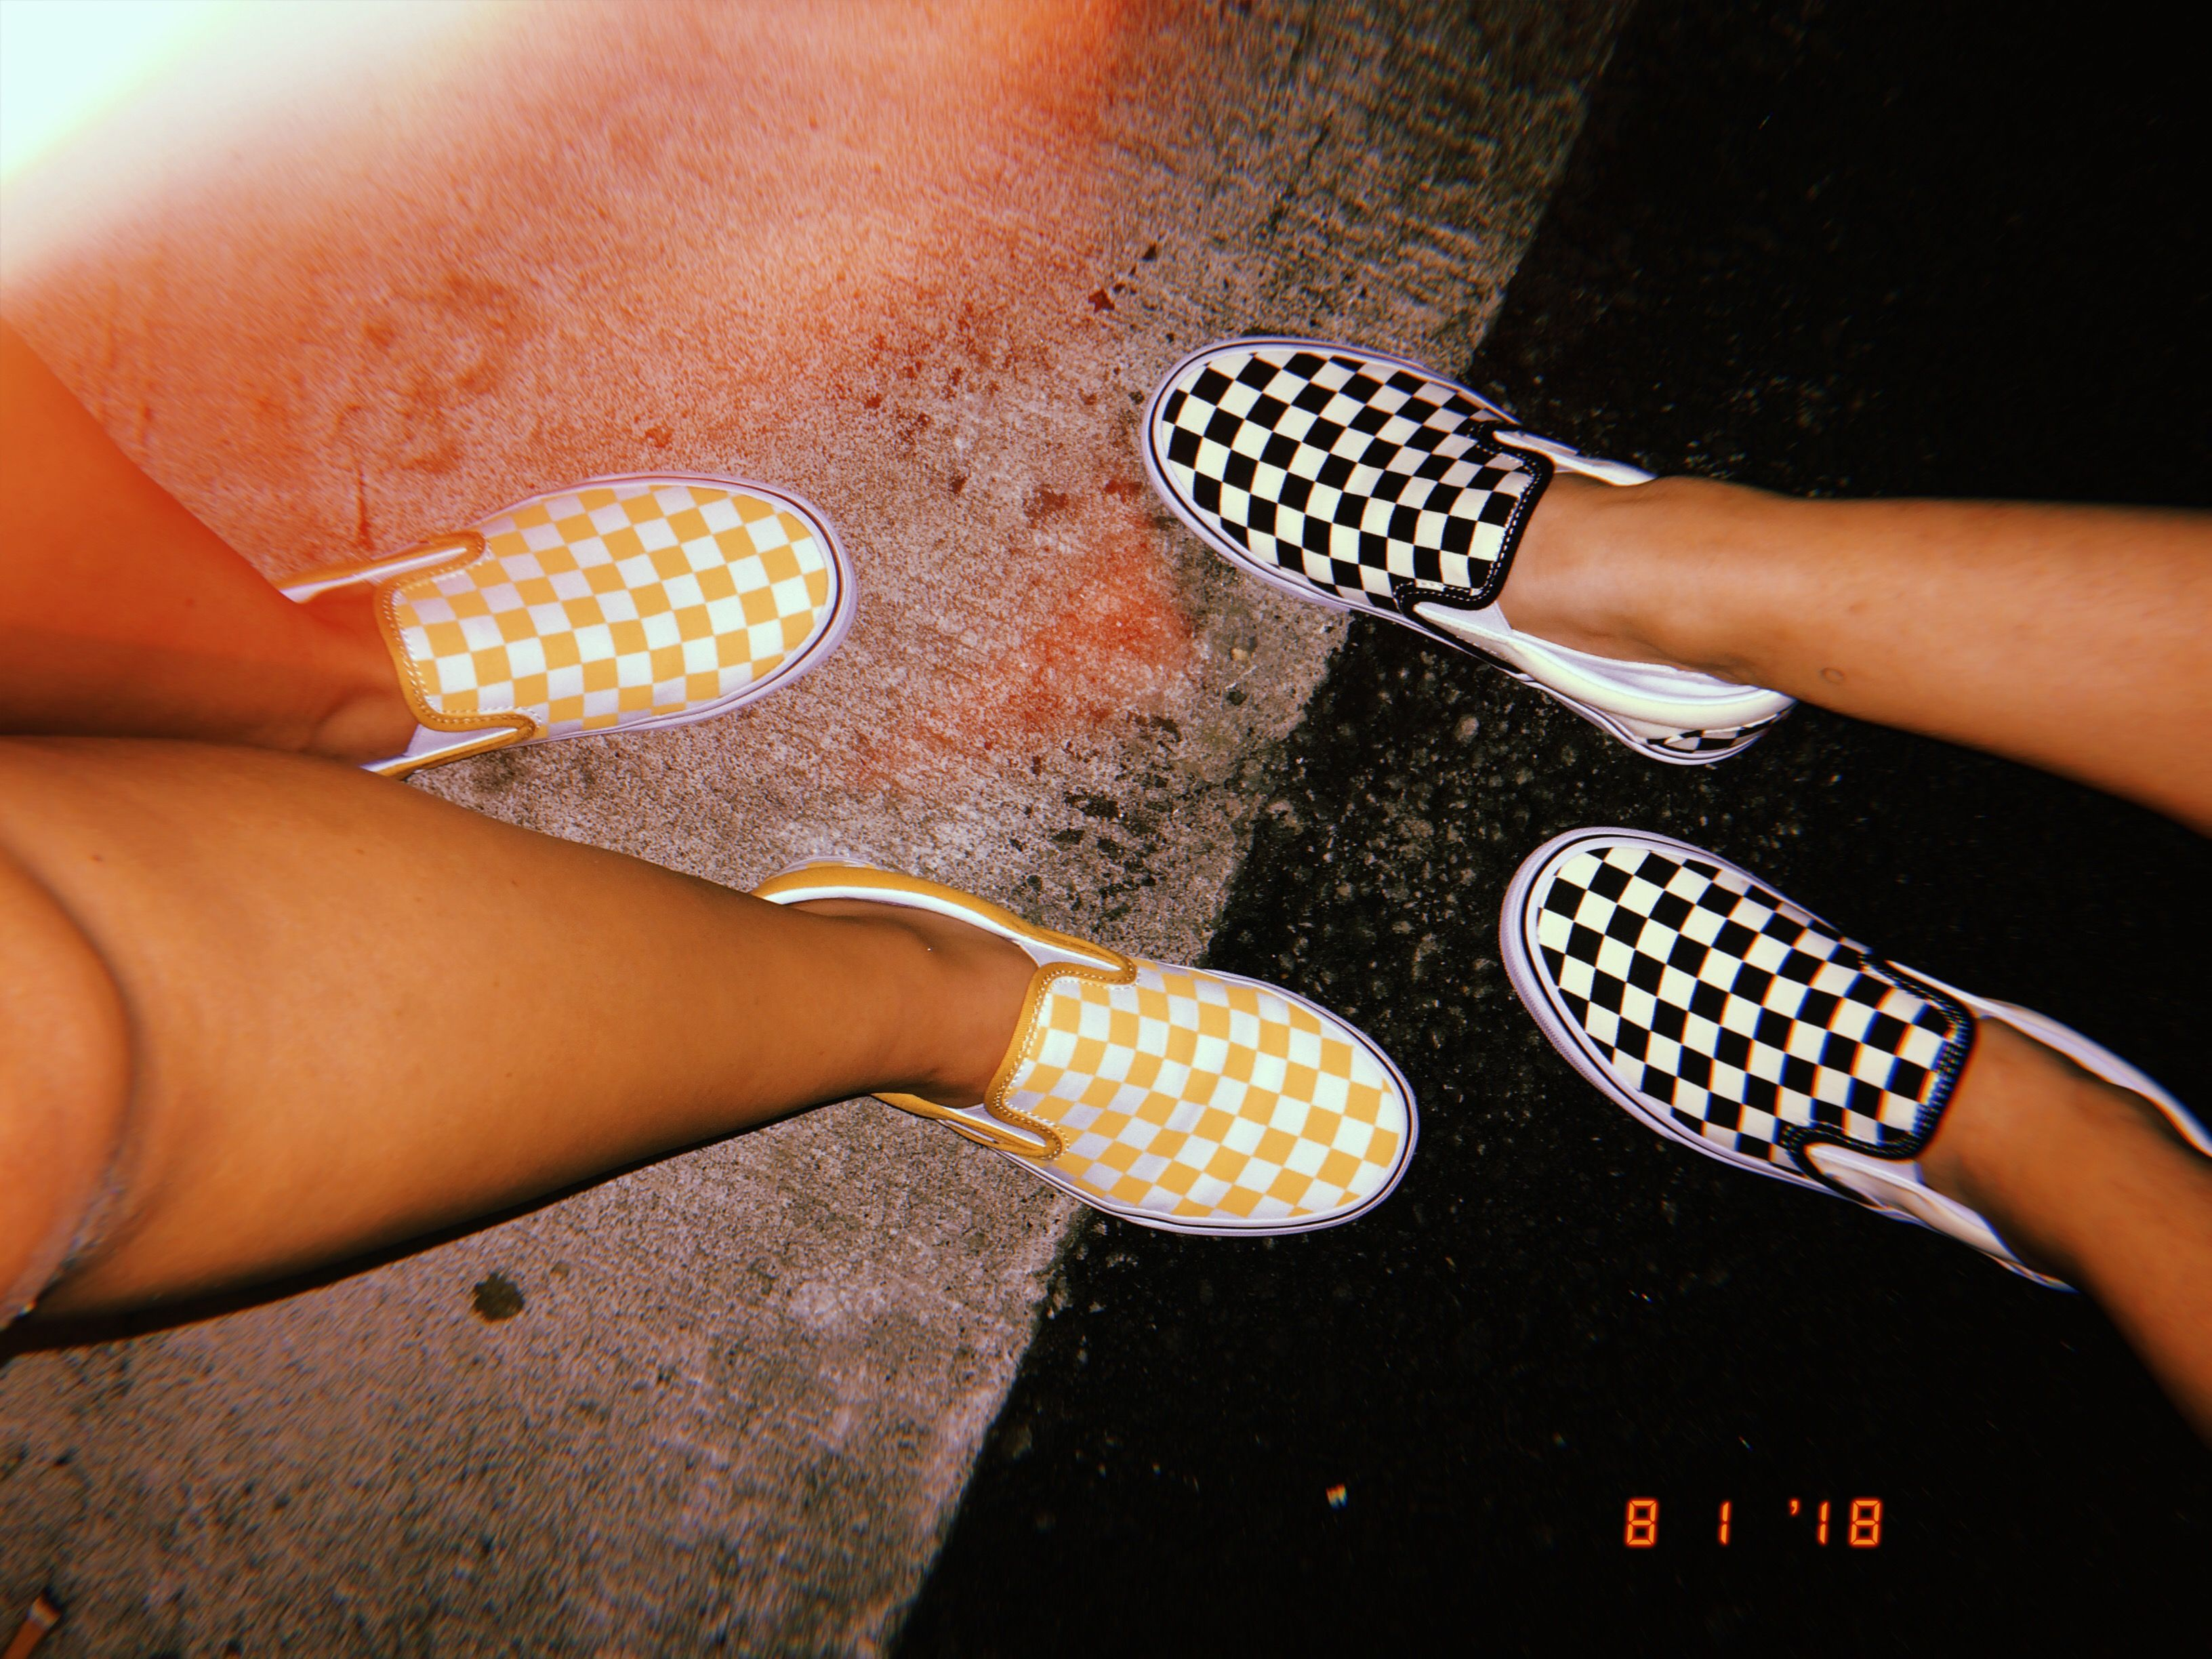 Checkered Slip On Vans Yellow And Black Aesthetic Friends Shoes